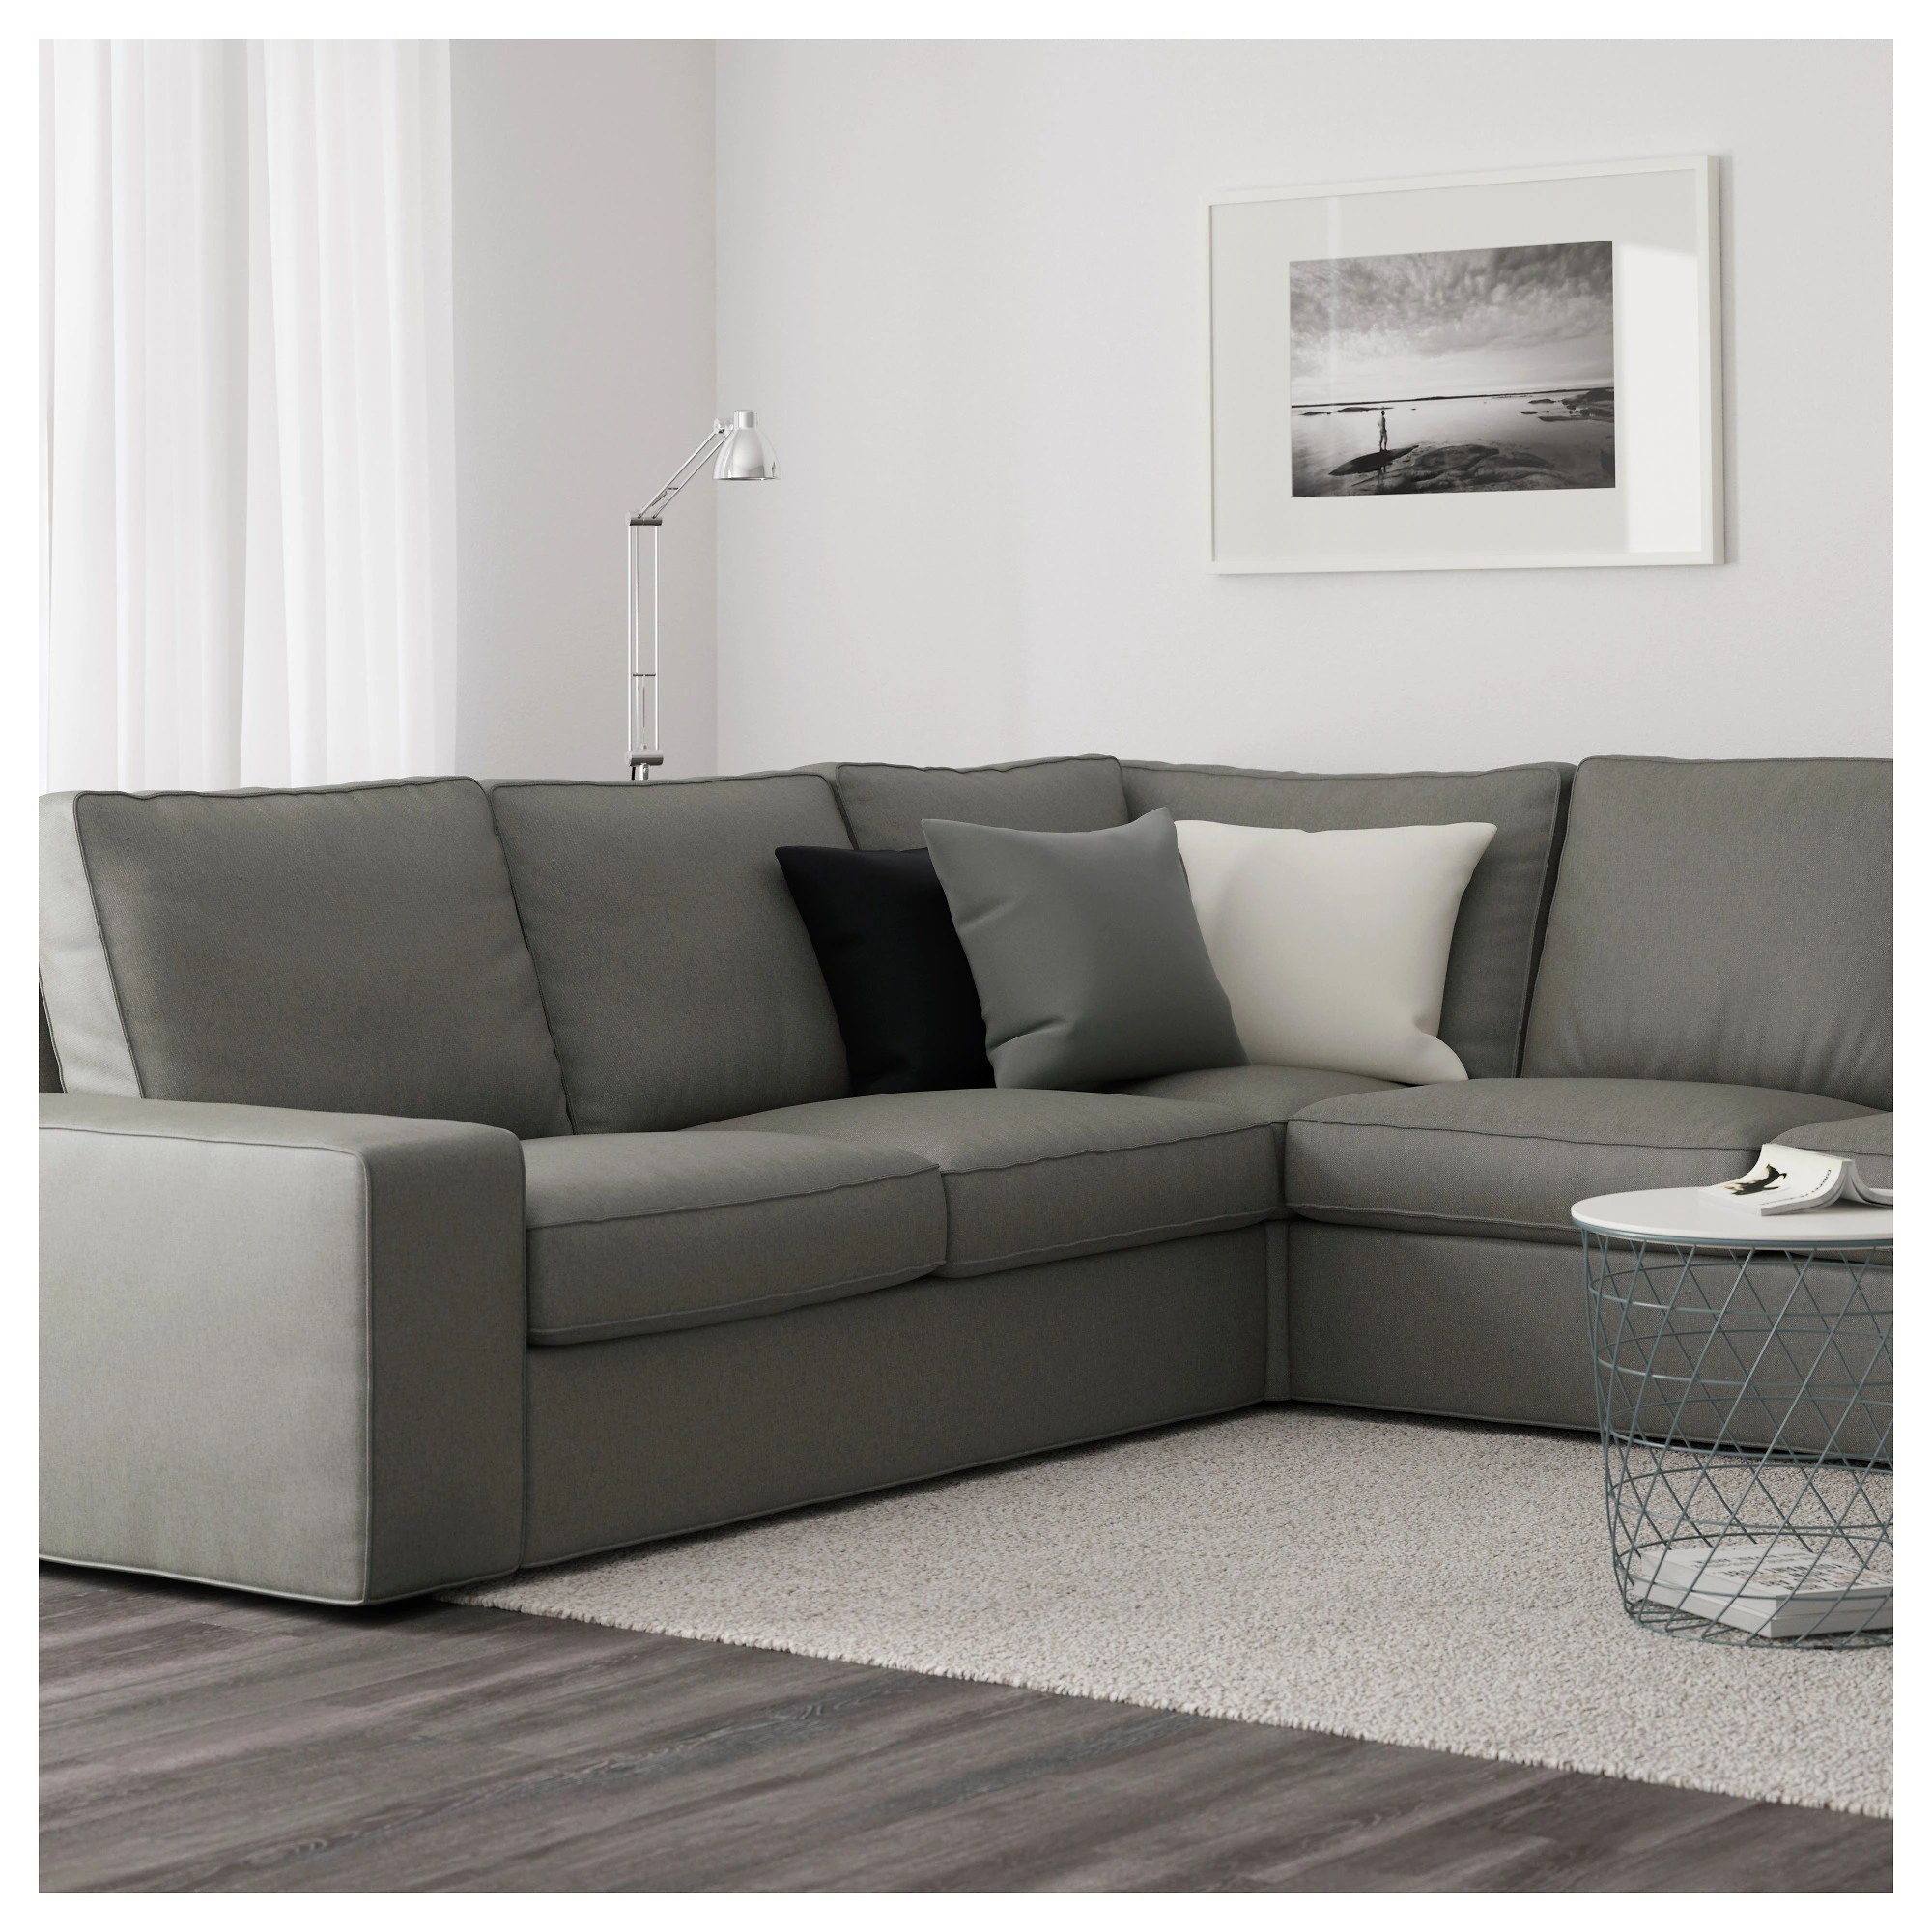 Kivik Sectional Kivik Sectional 5 Seat Corner Orrsta With Chaise Orrsta Light Gray